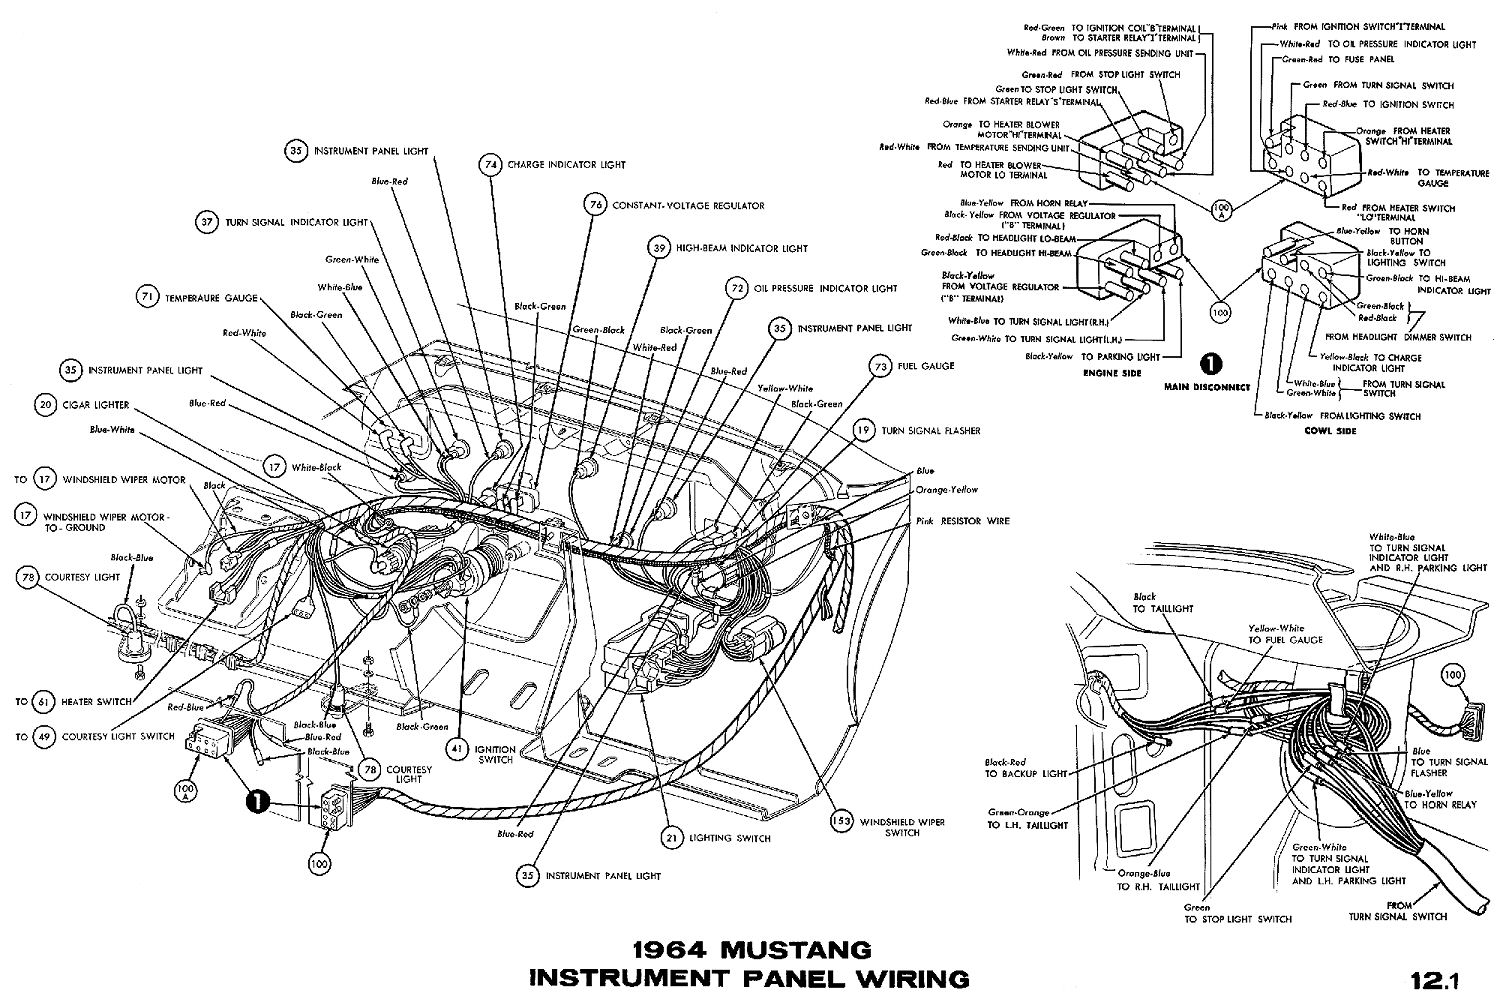 1969 Corvette Wiring Diagram Schematics Diagrams Starter 1964 Mustang Average Joe Restoration Wiper